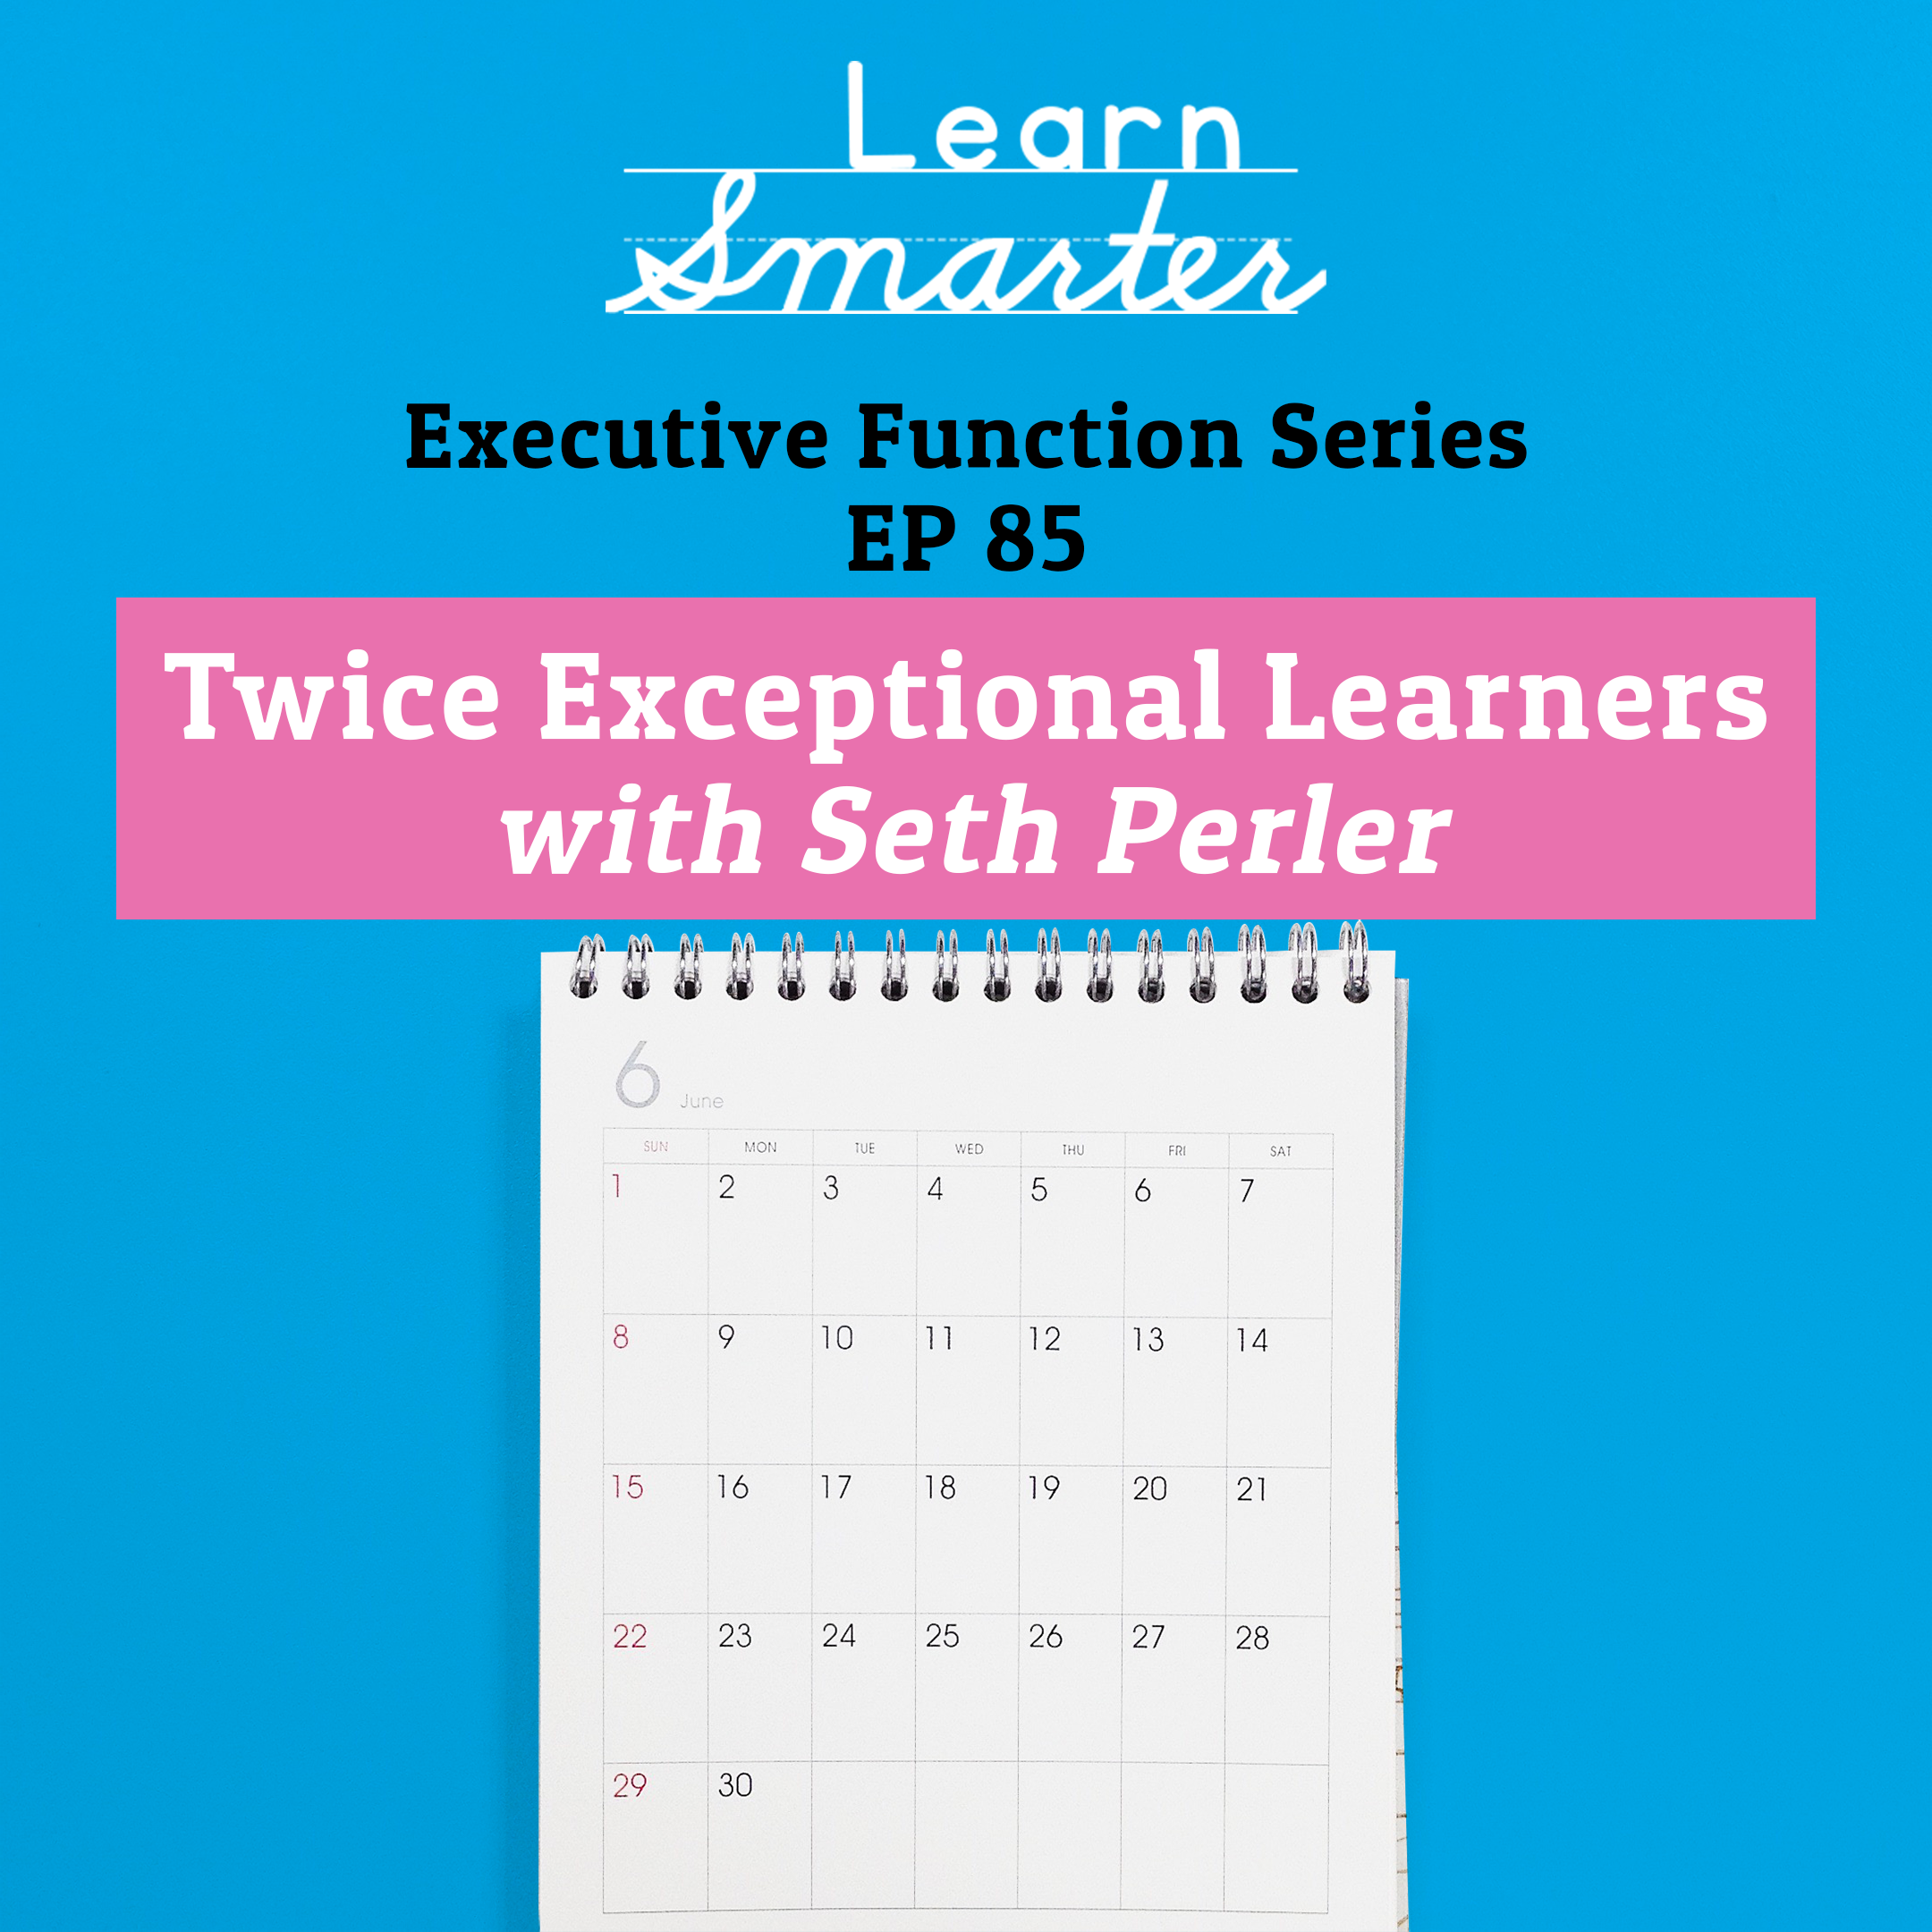 85: Twice Exceptional Learners with Seth Perler (Executive Function Series)